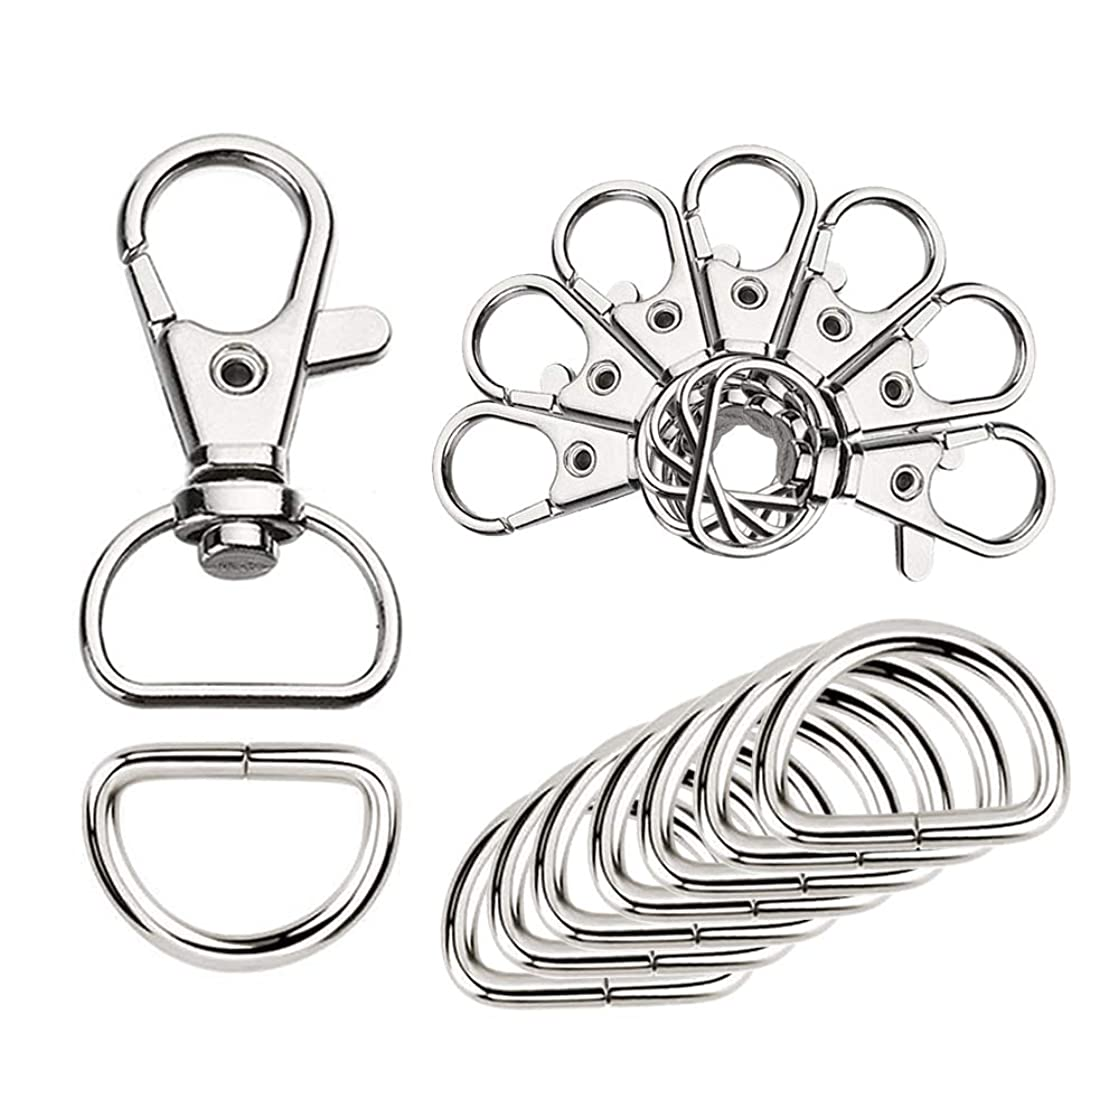 60Pcs Key Chain Hooks with D Rings for Handbag Purse Lanyard and Sewing Projects